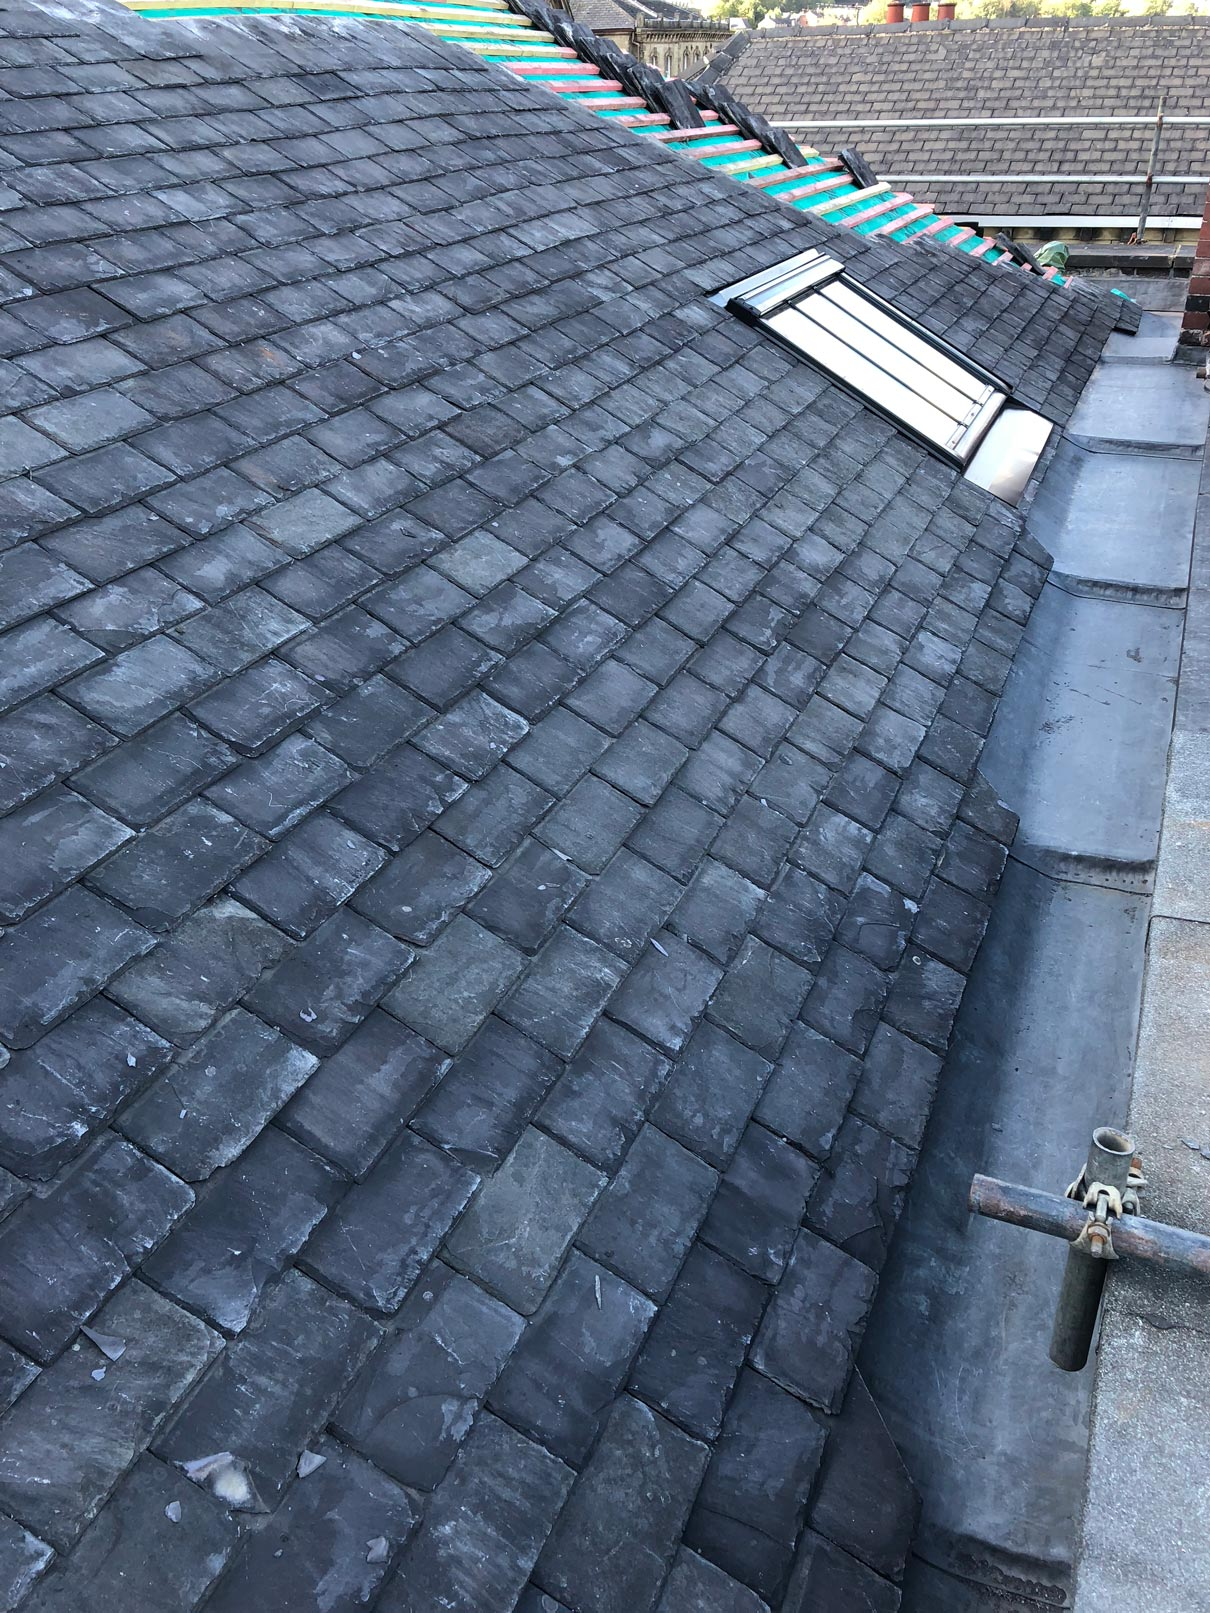 Slate and Tile Roofing MJB Roofing